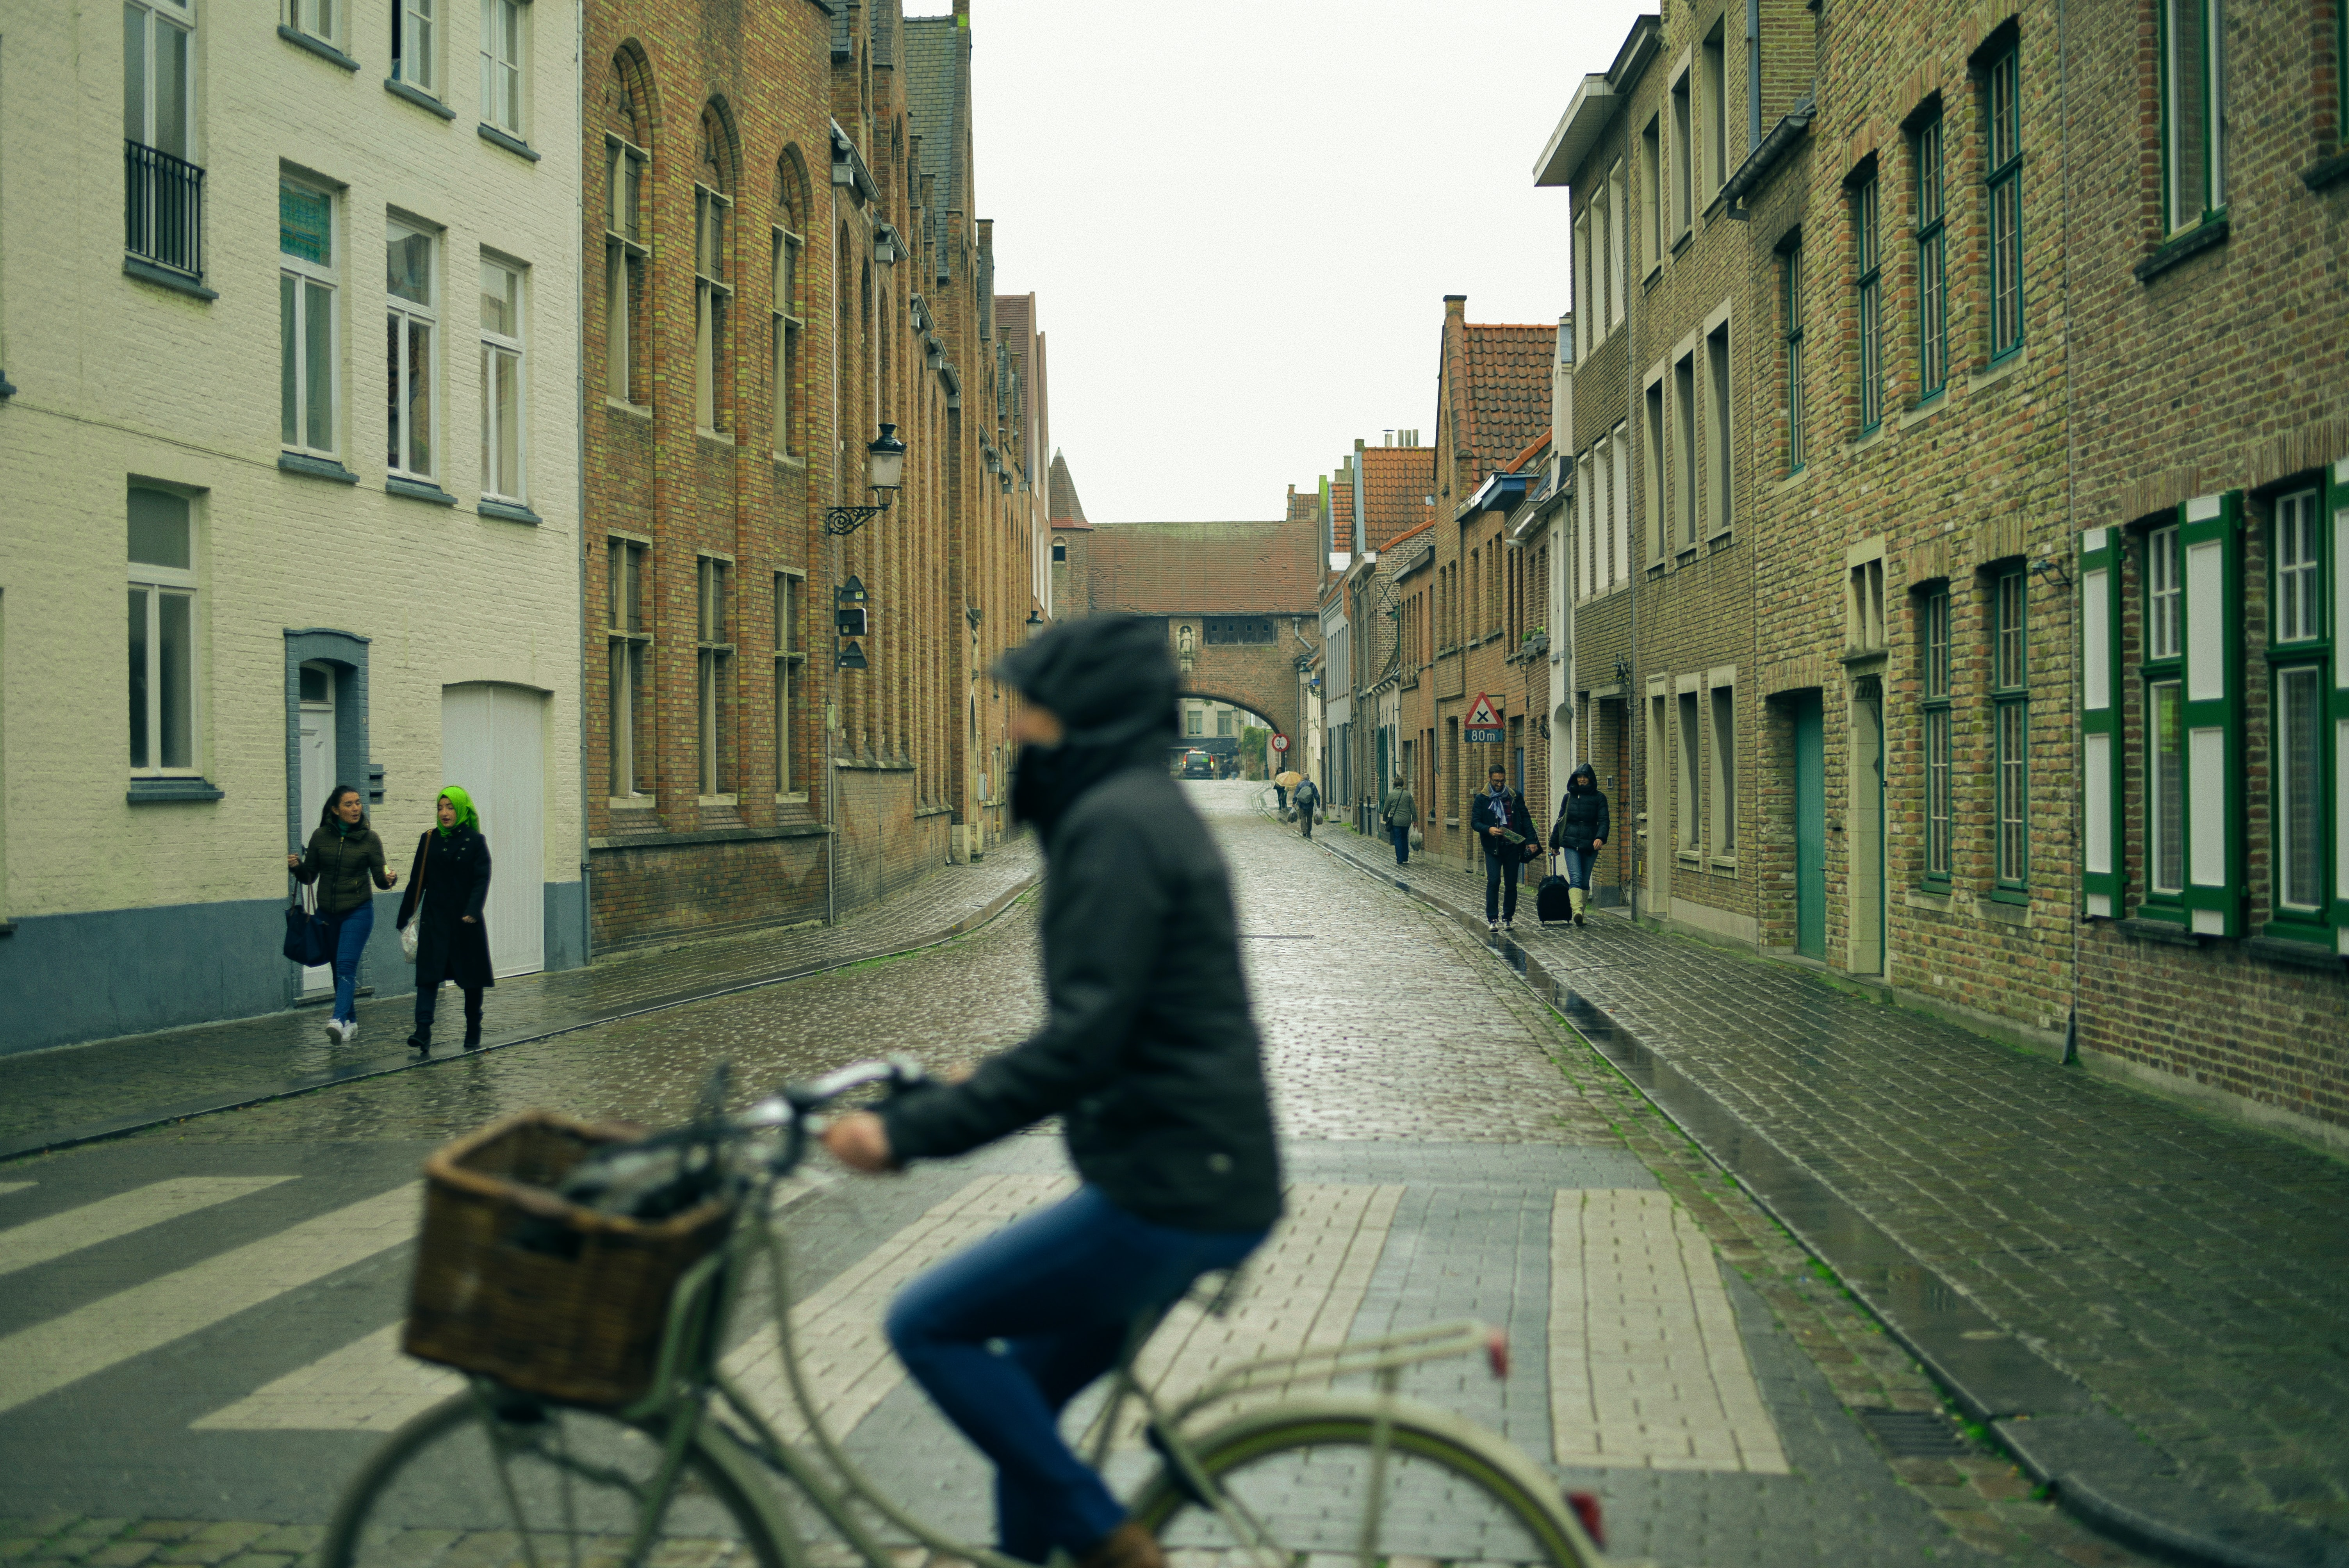 selective photography of people walking on sidewalks at side of buildings view from person riding city bicycle